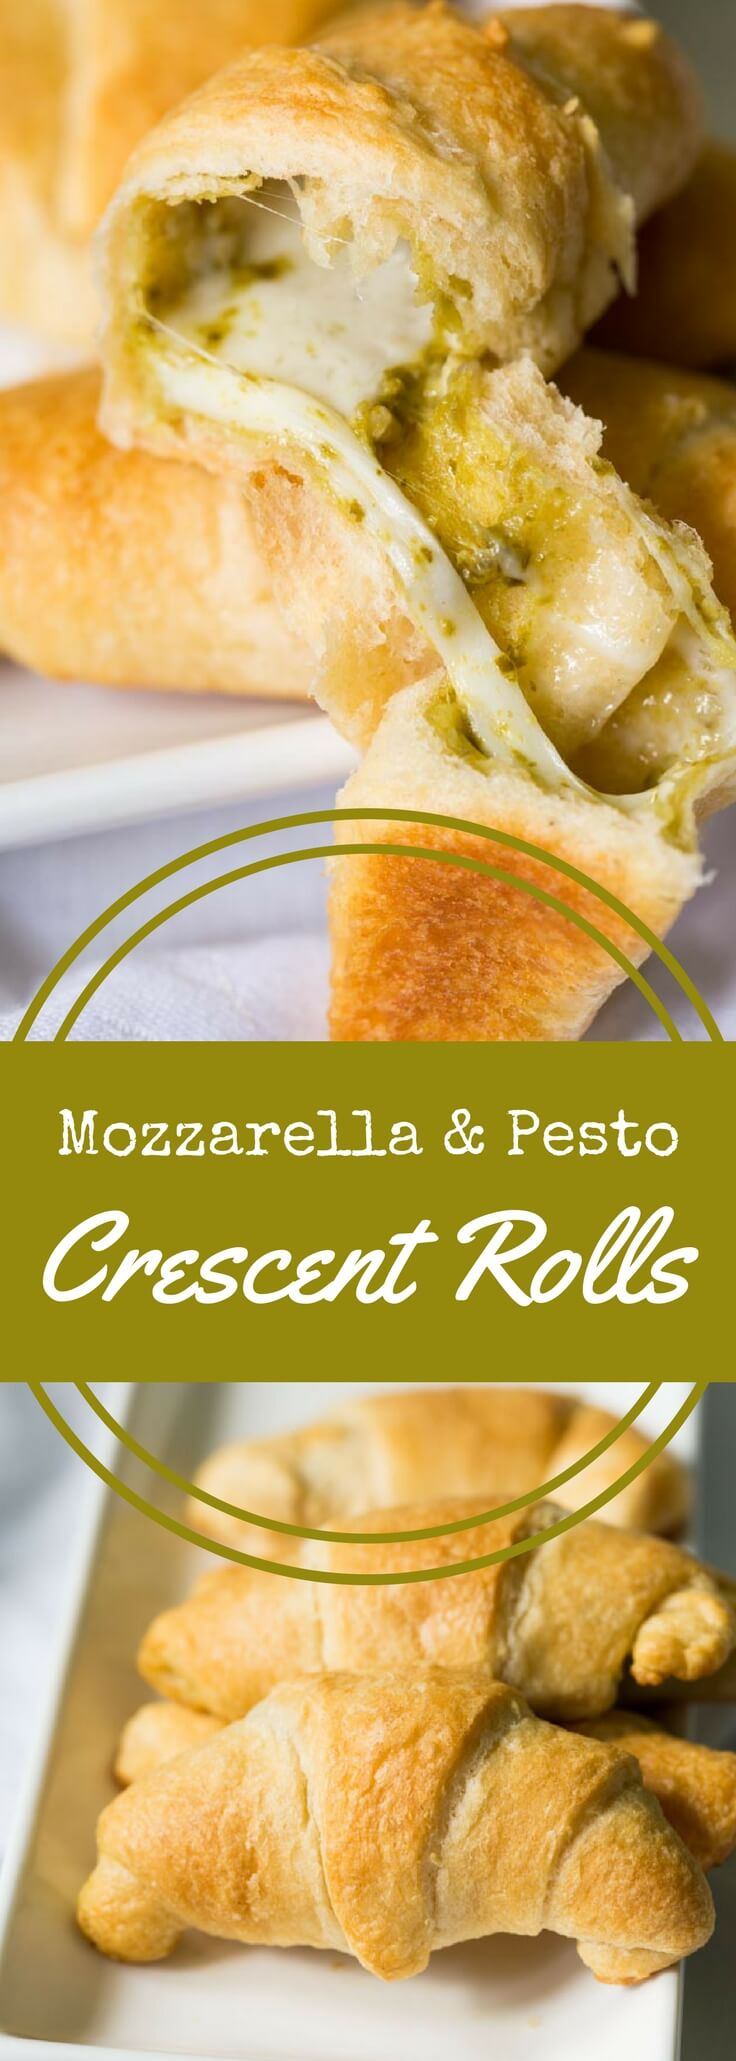 These mozzarella and pesto stuffed crescent rolls are easy to make! Just fill, roll, and bake for a tasty, cheesy bread to accompany your meal.